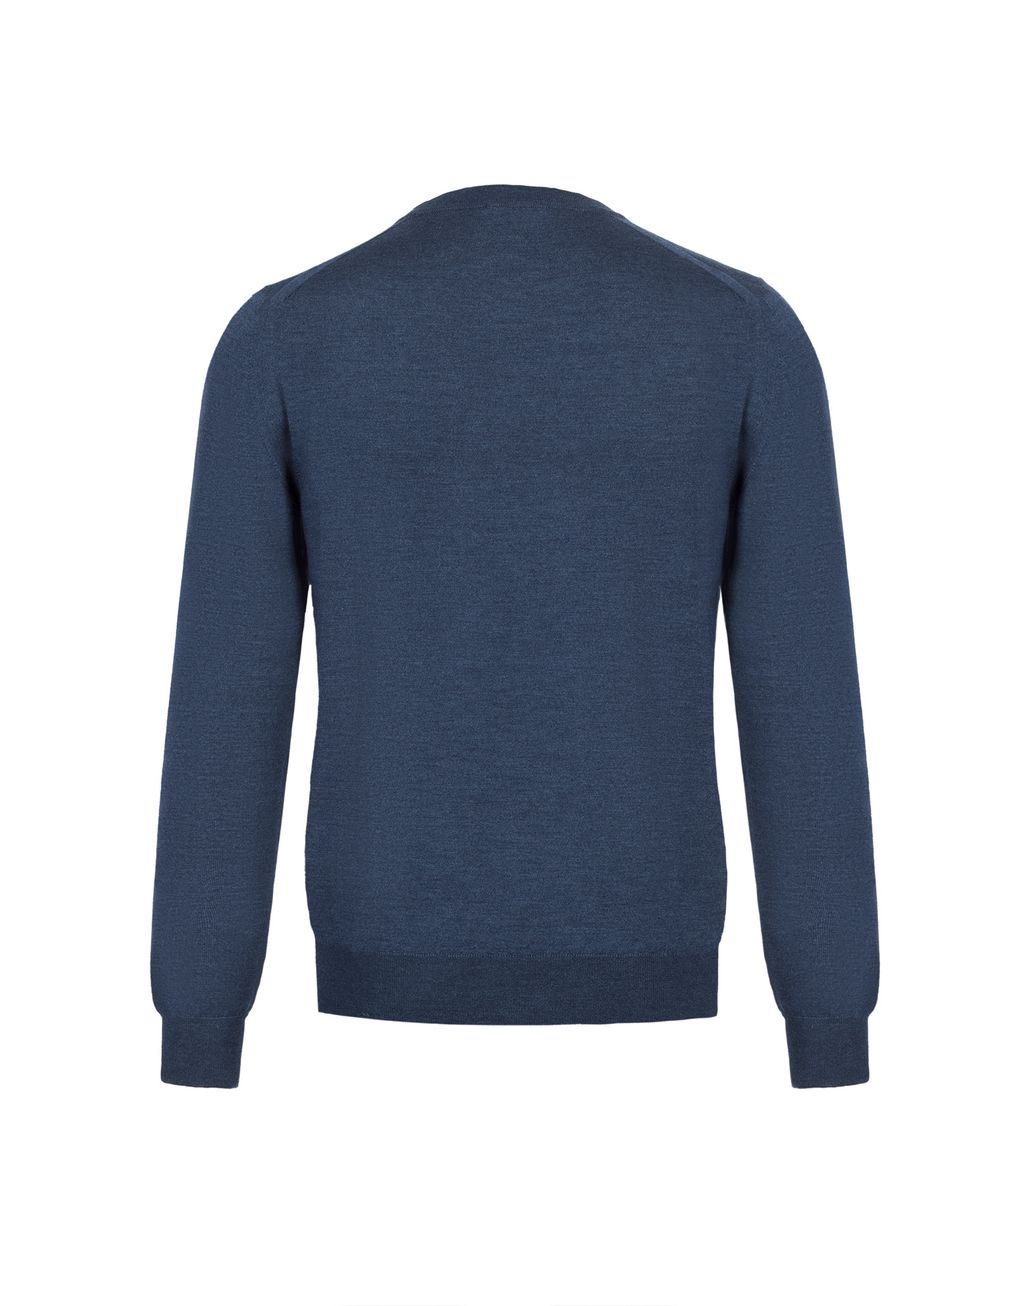 BRIONI Bluette Crew-Neck Sweater Knitwear U d